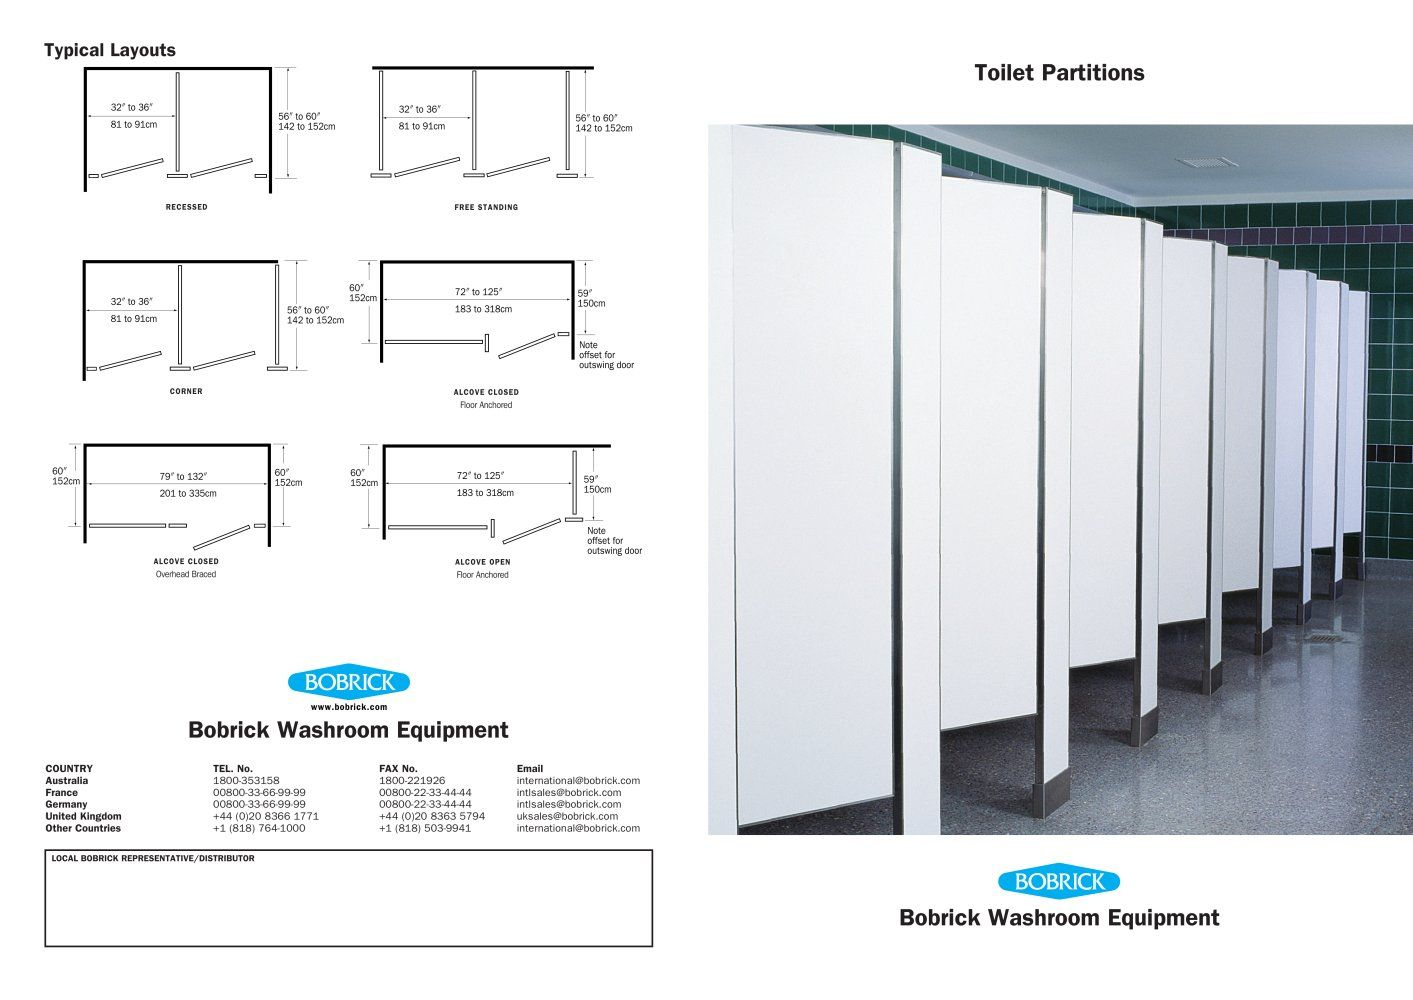 Bathroom Partitions Nz bathroom stalls, phenolic featured. mounting configurations show